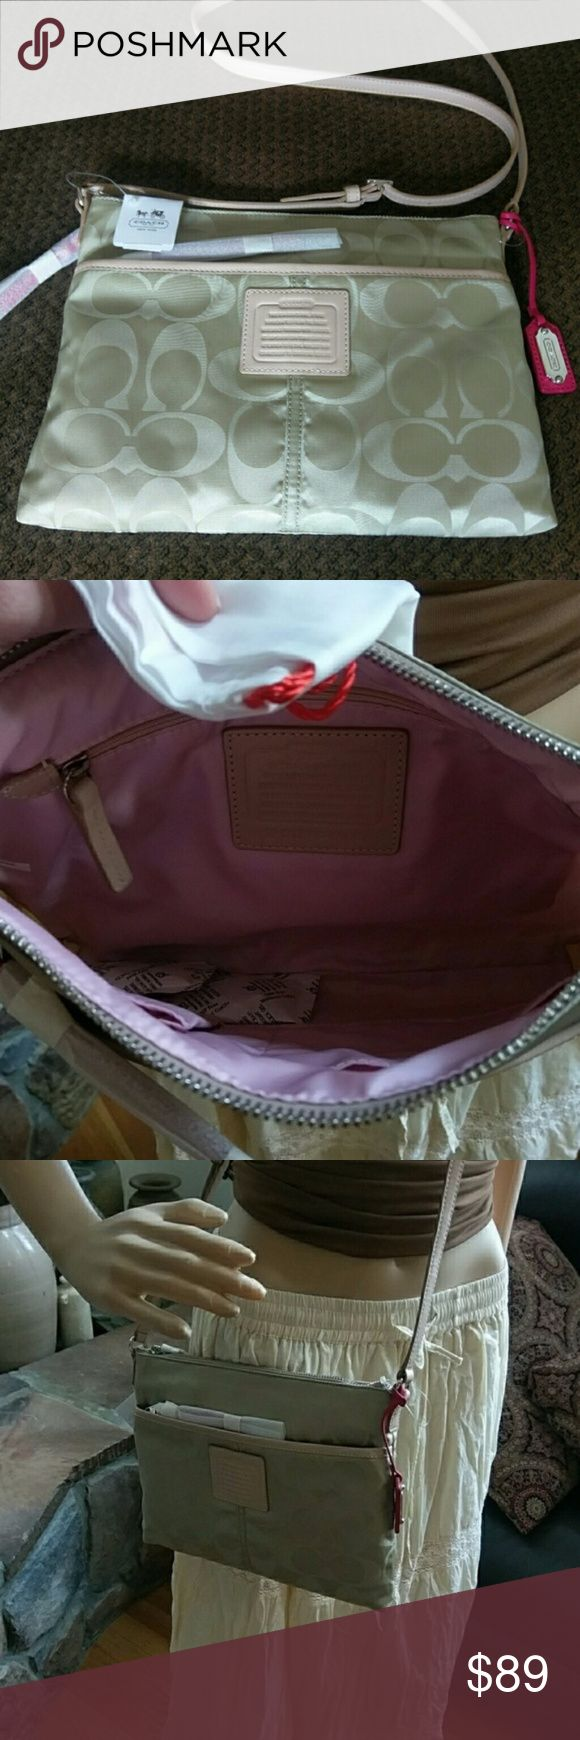 """Coach Legacy Wknd Hippie NWT Coach Legacy Weekend Signature Hippie NWT Khaki Nylon 11"""" L x 8"""" H x 1"""" W Never used perfect condition comes with dust bag retails for $148 multiple available Coach Bags"""